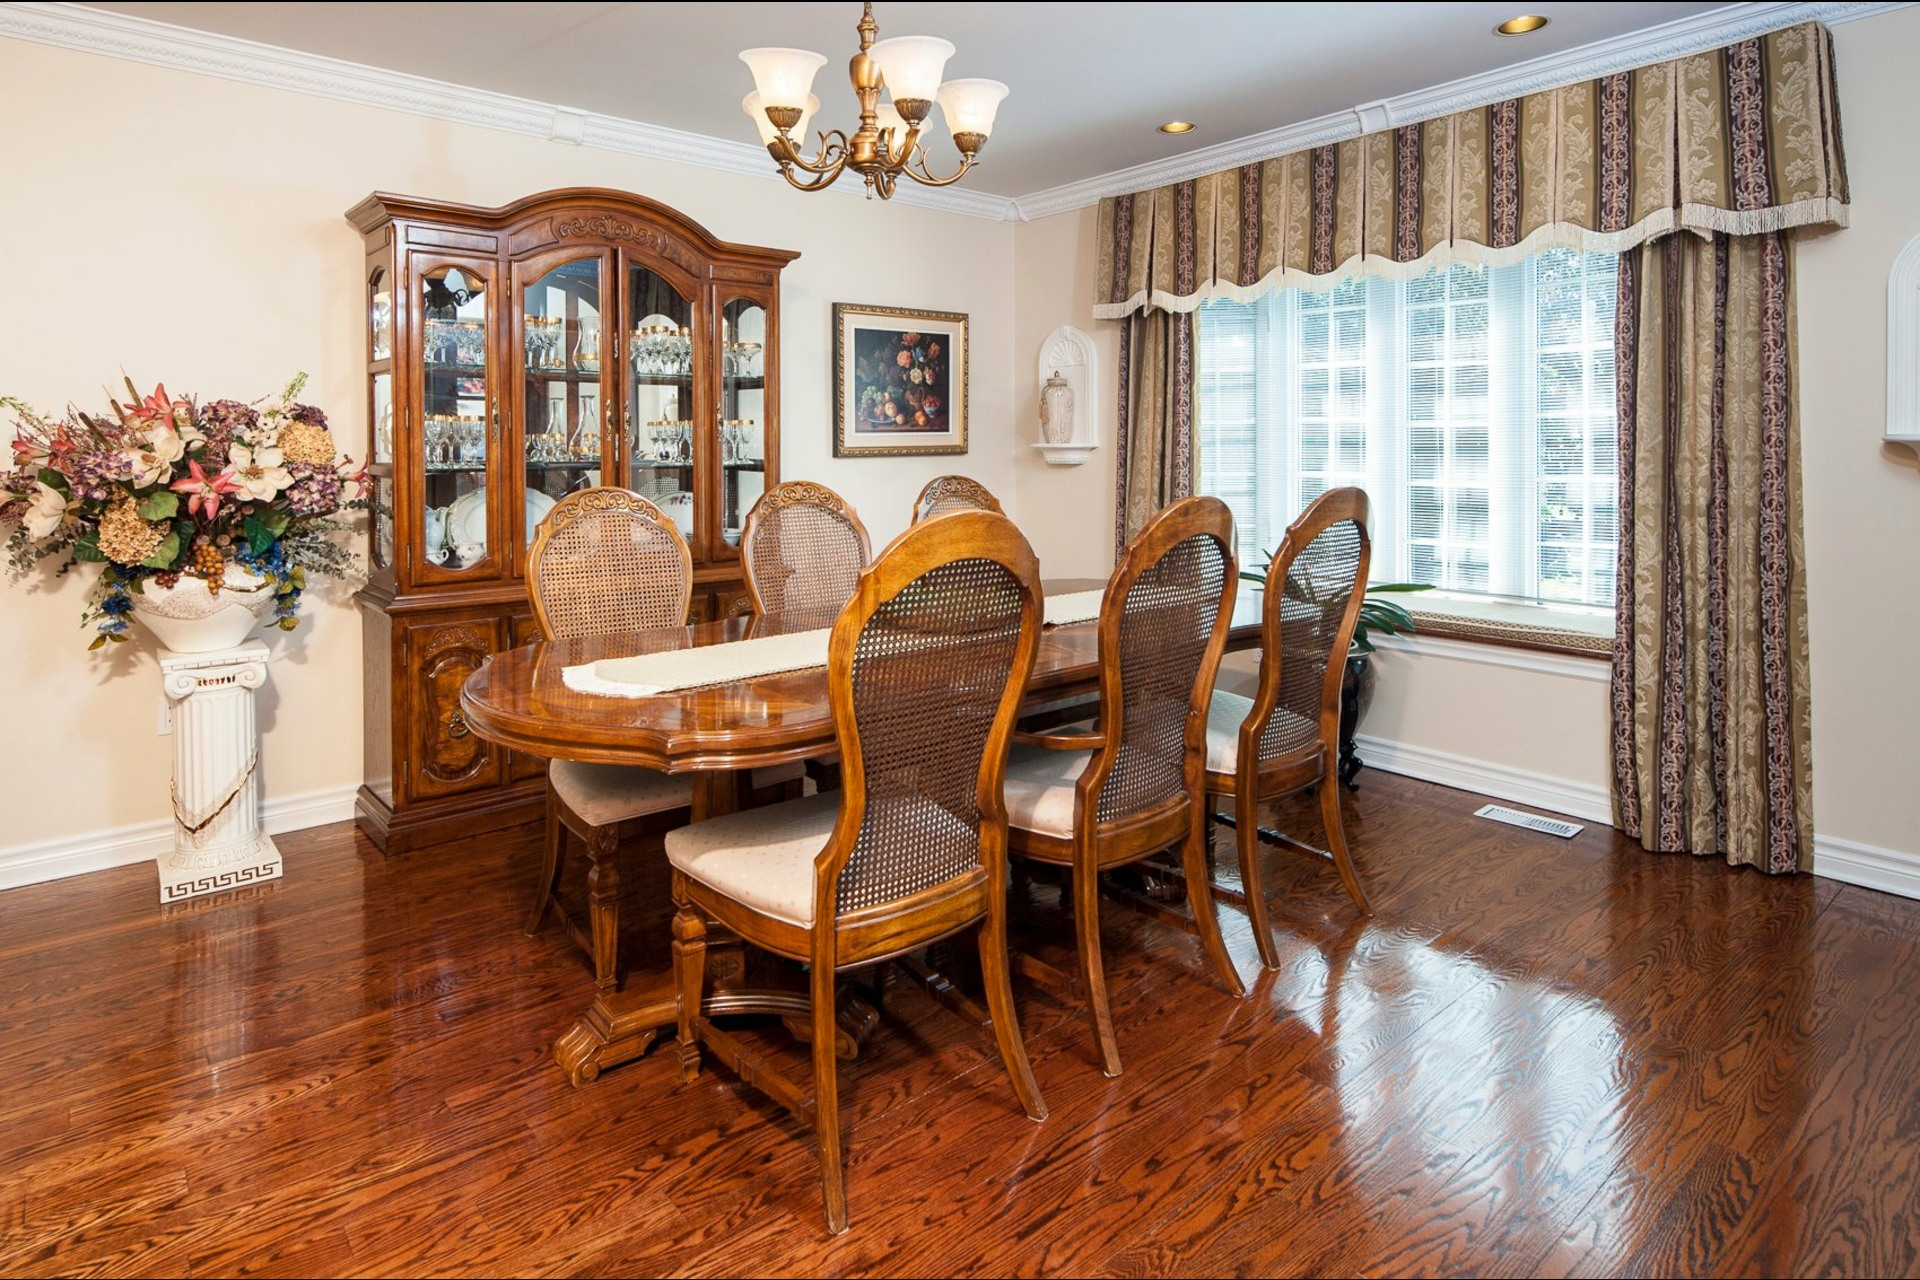 image 8 - House For sale Beaconsfield